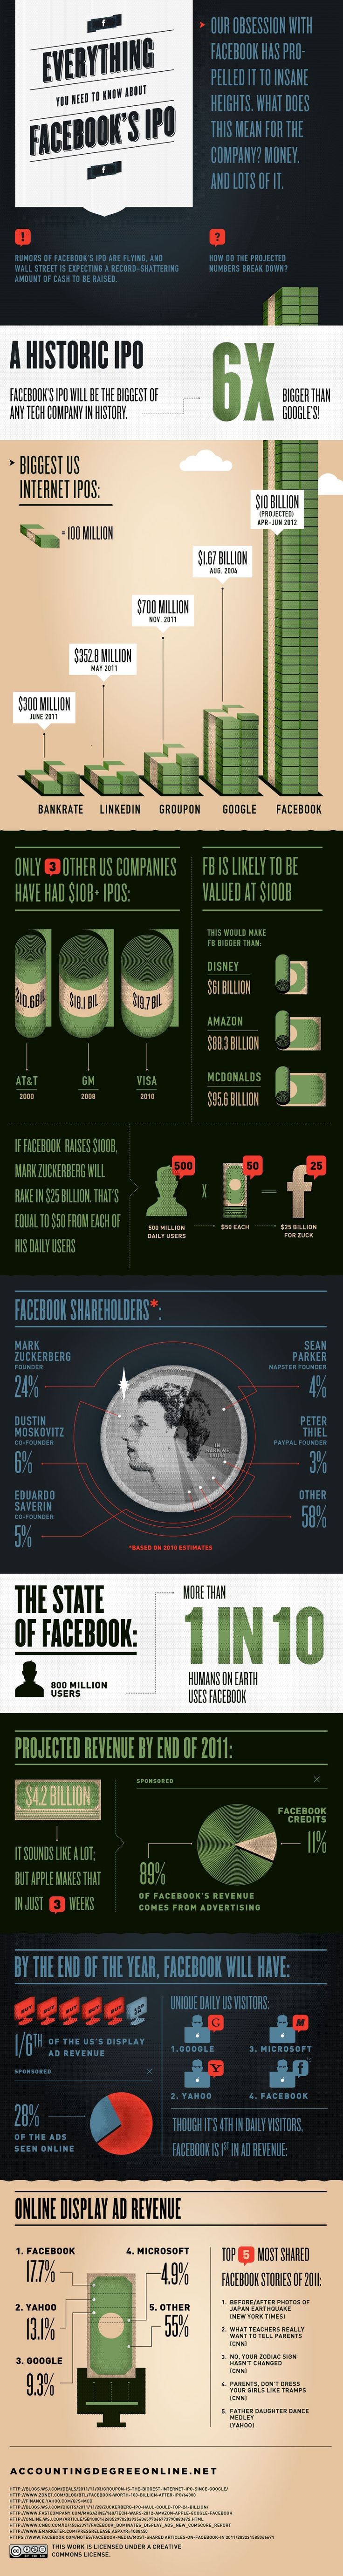 How Facebook's Expected $100 B